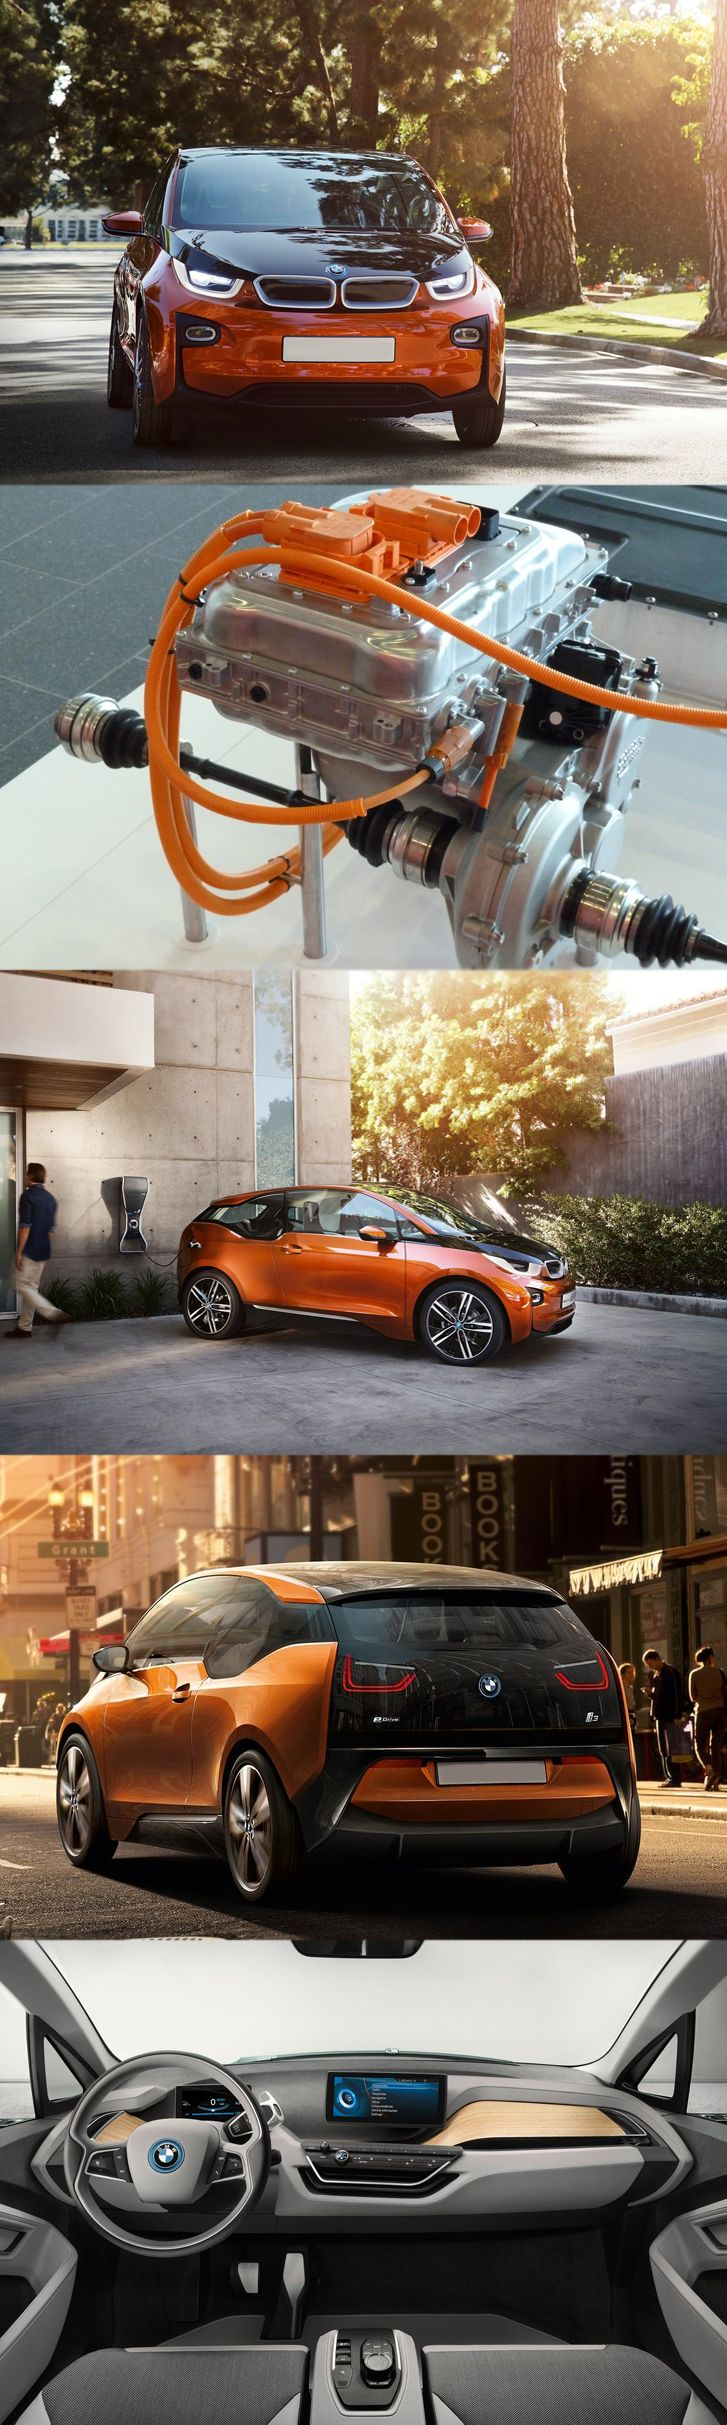 THE DESIRABLE BMW I3  For more details about BMW i3: https://www.bmwengineworks.co.uk/blog/desirable-bmw-i3/